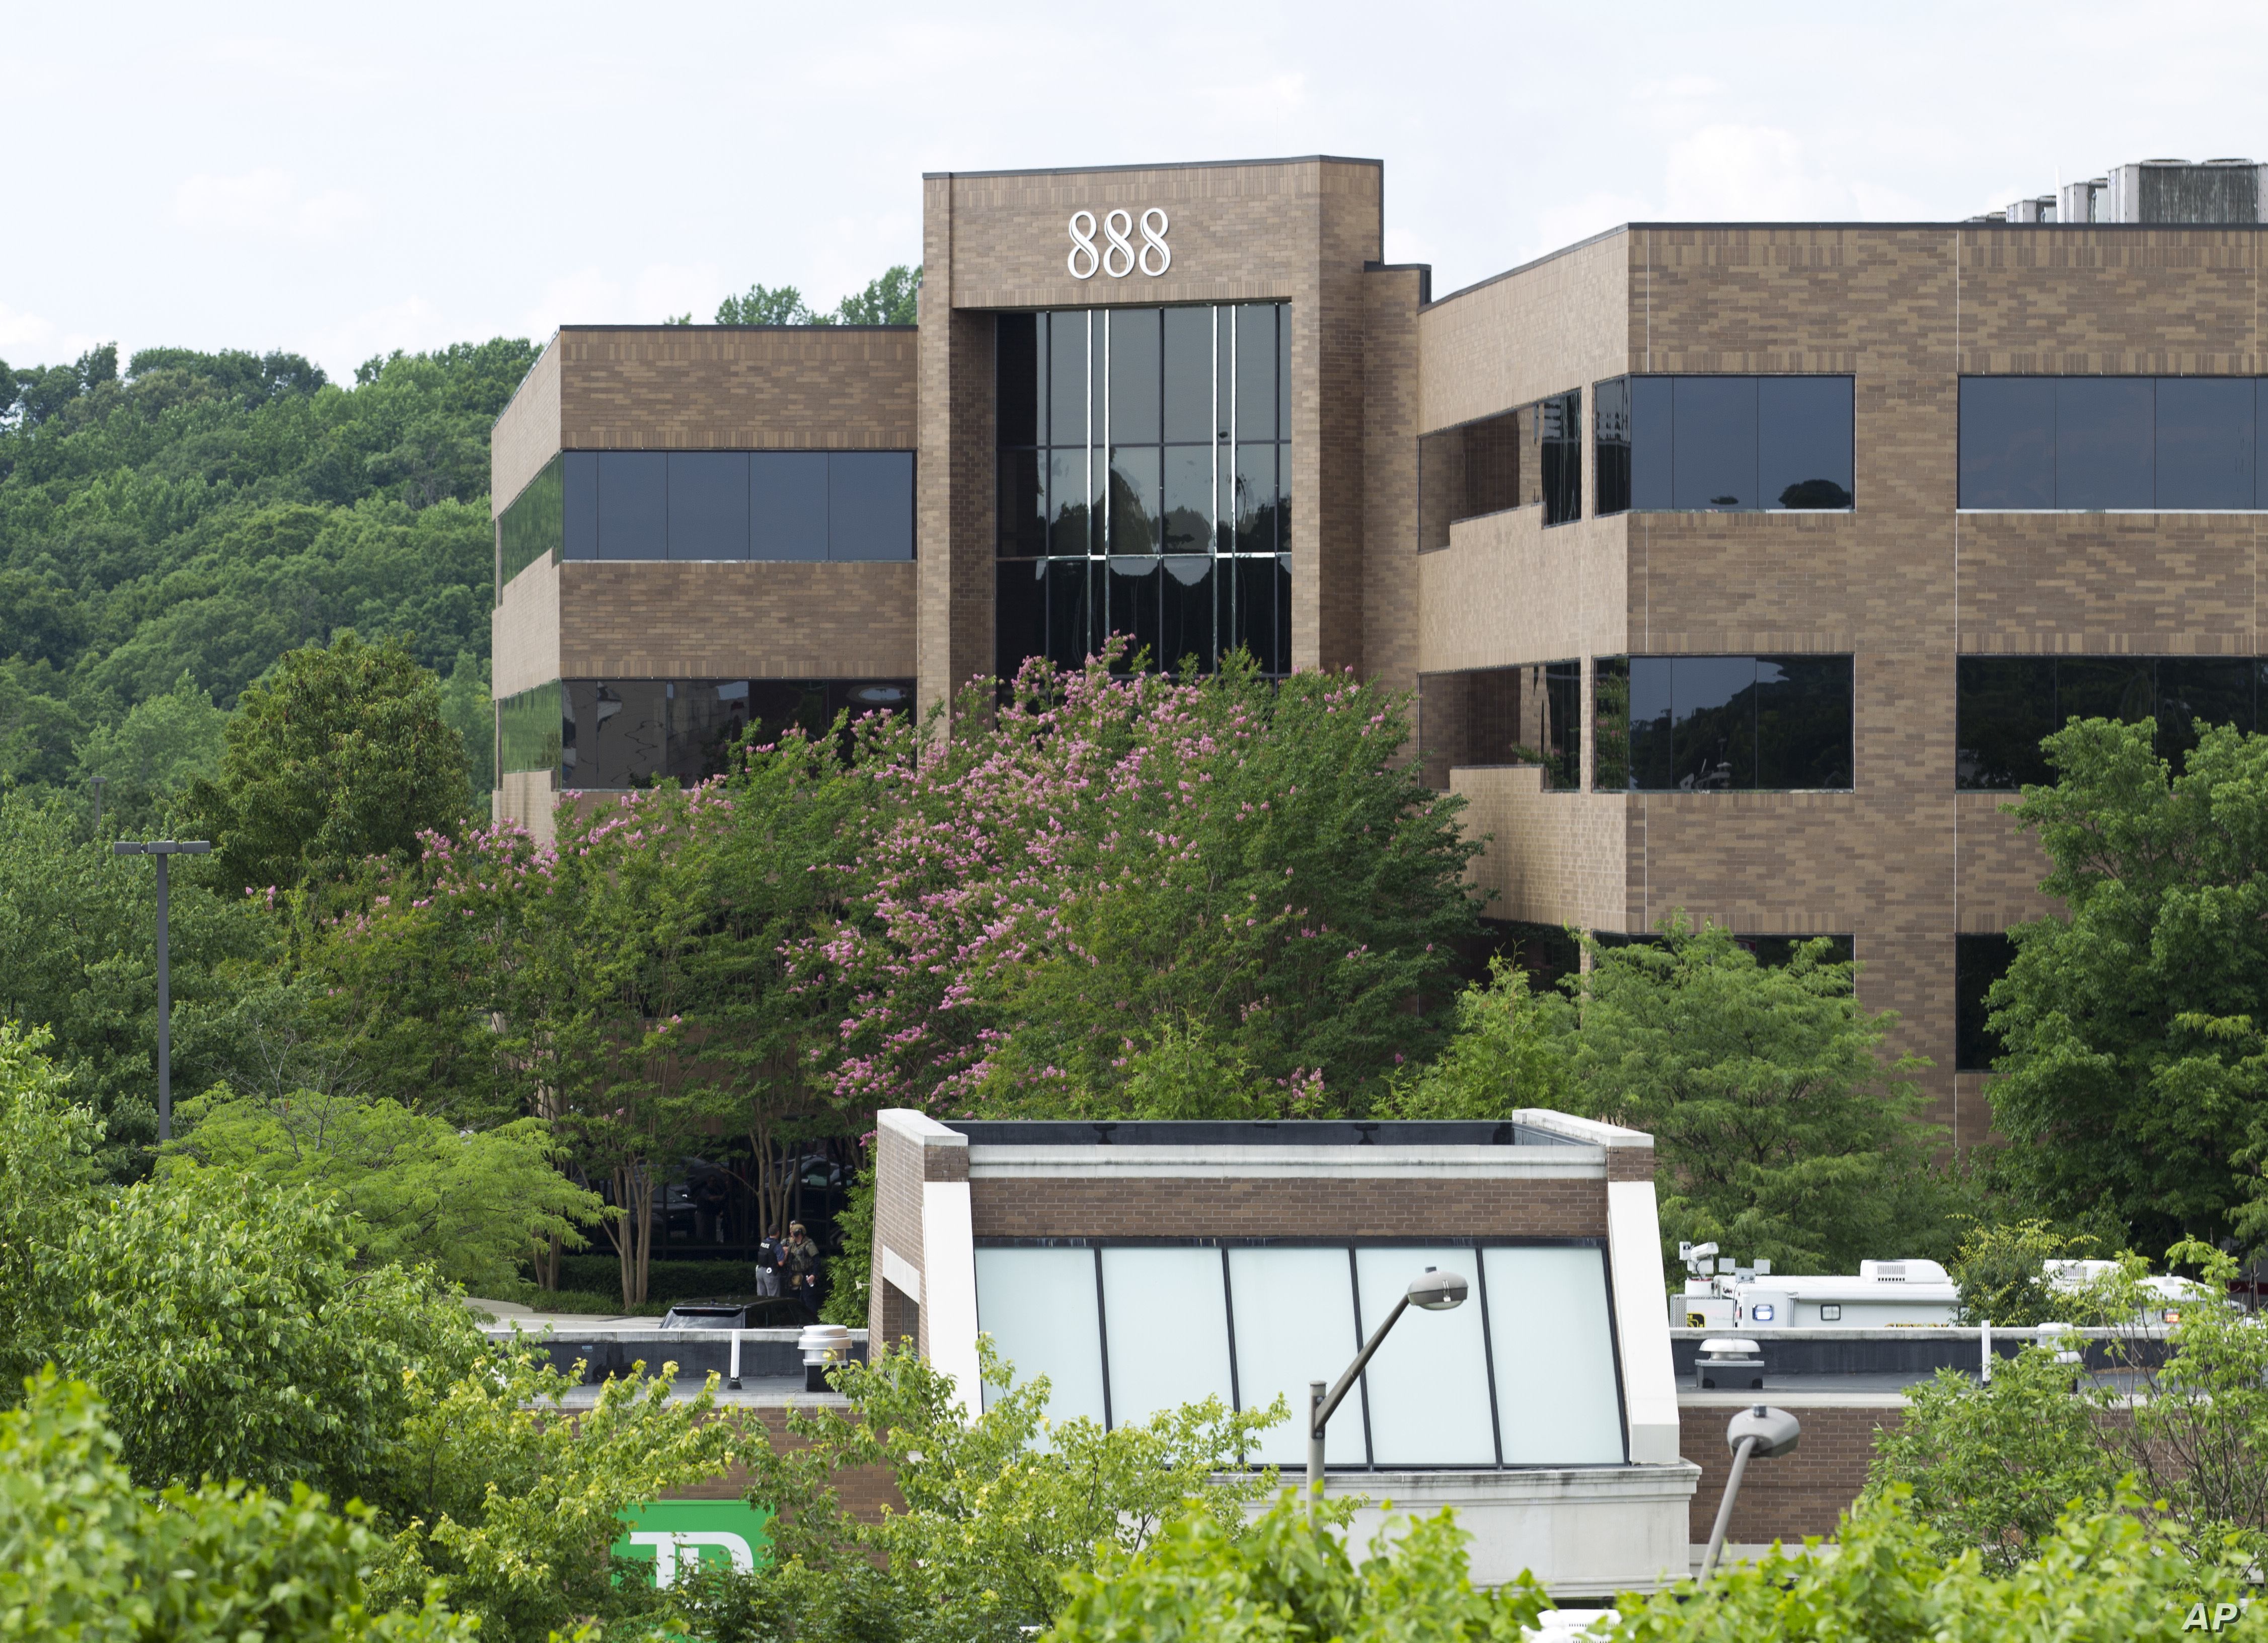 The 888 Bestgate Road building is seen after police received reports of multiple people being shot at the Capital Gazette newspaper in Annapolis, Md., June 28, 2018.